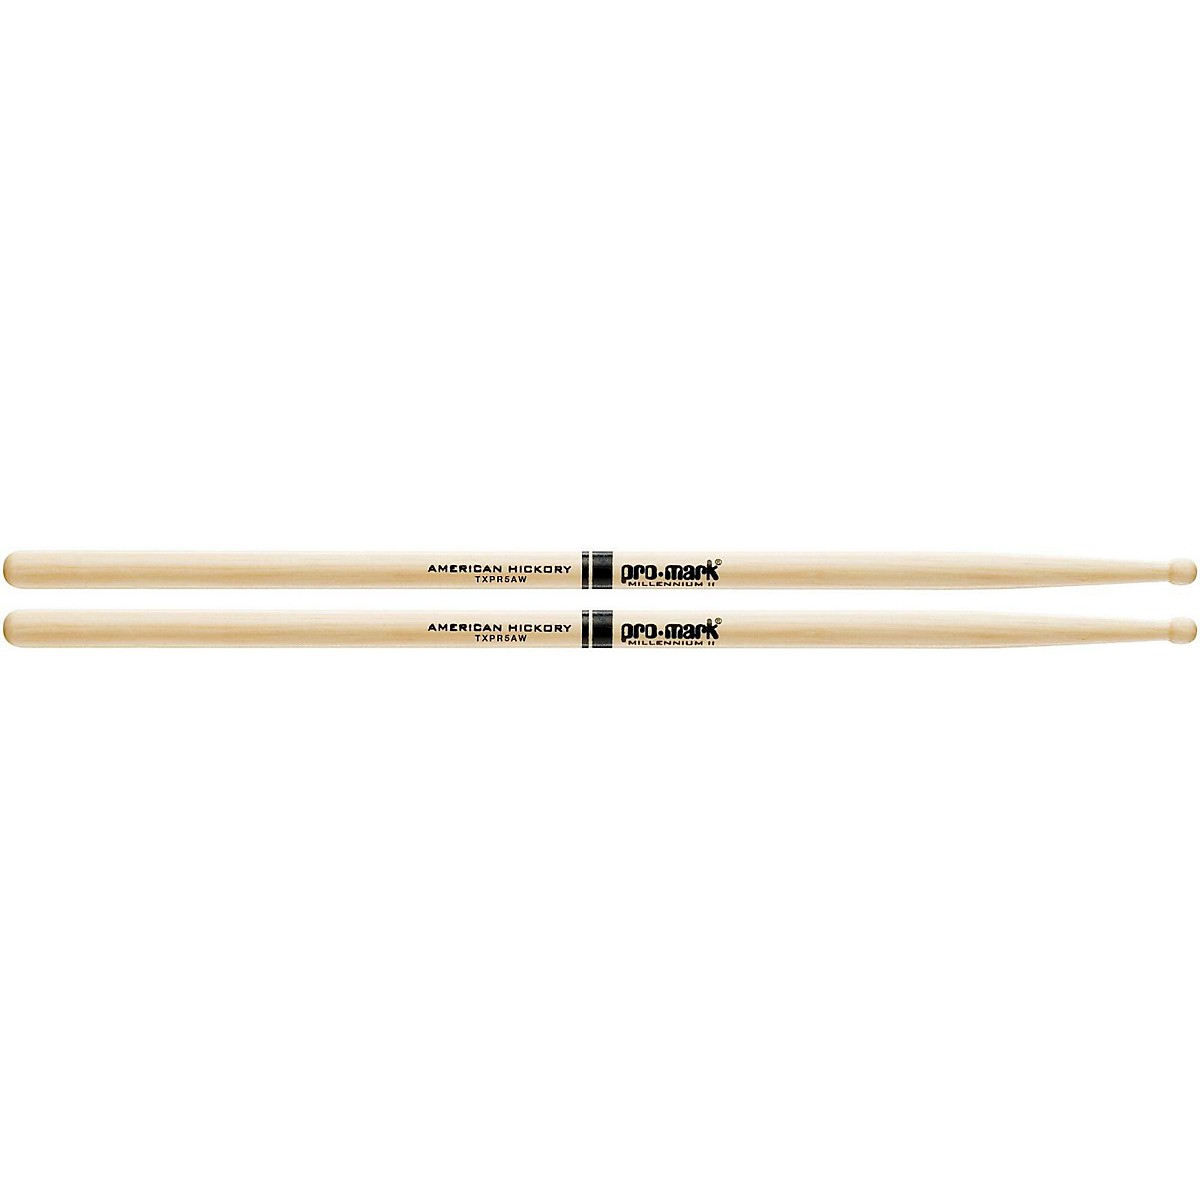 Promark Hickory 5A Pro-Round Wood Drum Sticks